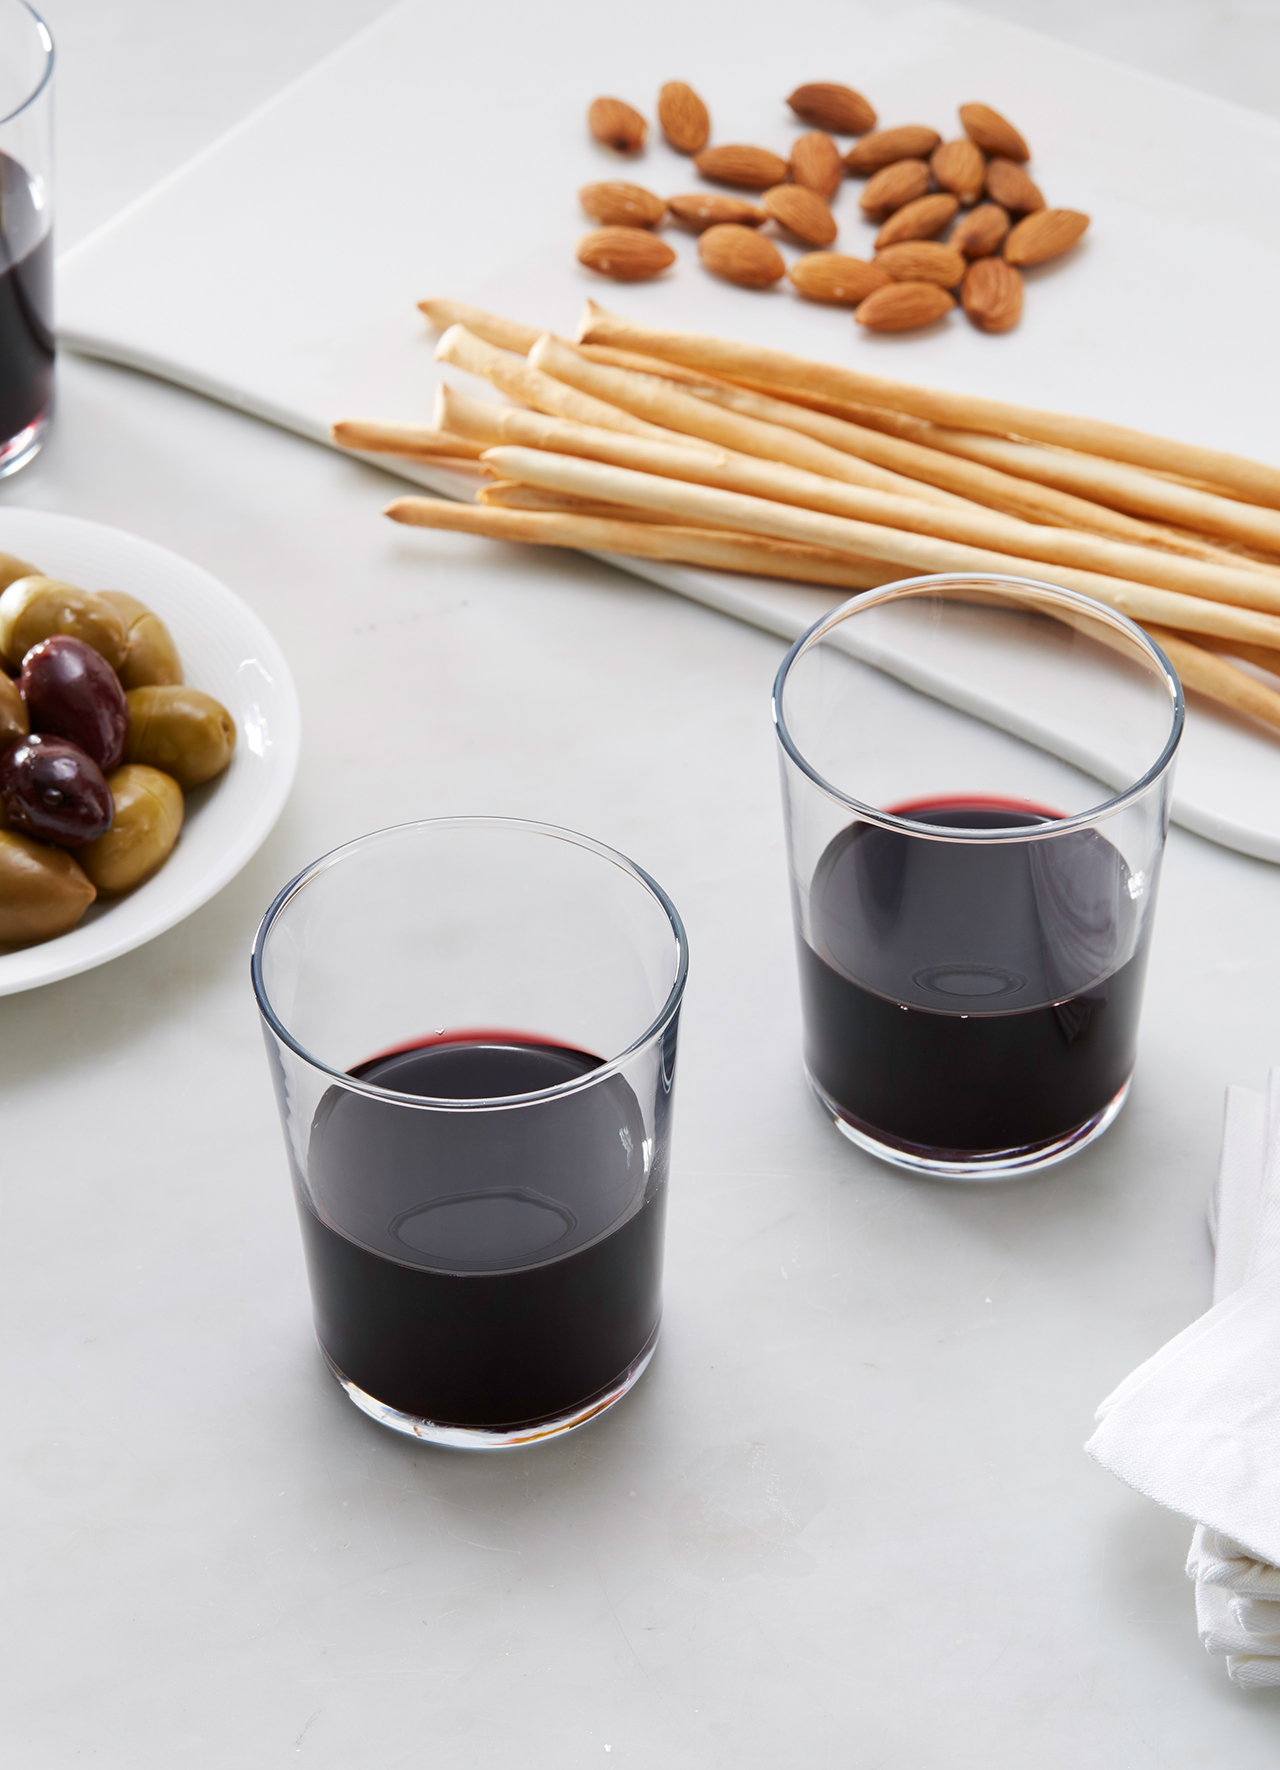 Understanding Sulfites: What Are They, and Do They Really Cause Red Wine Headaches?